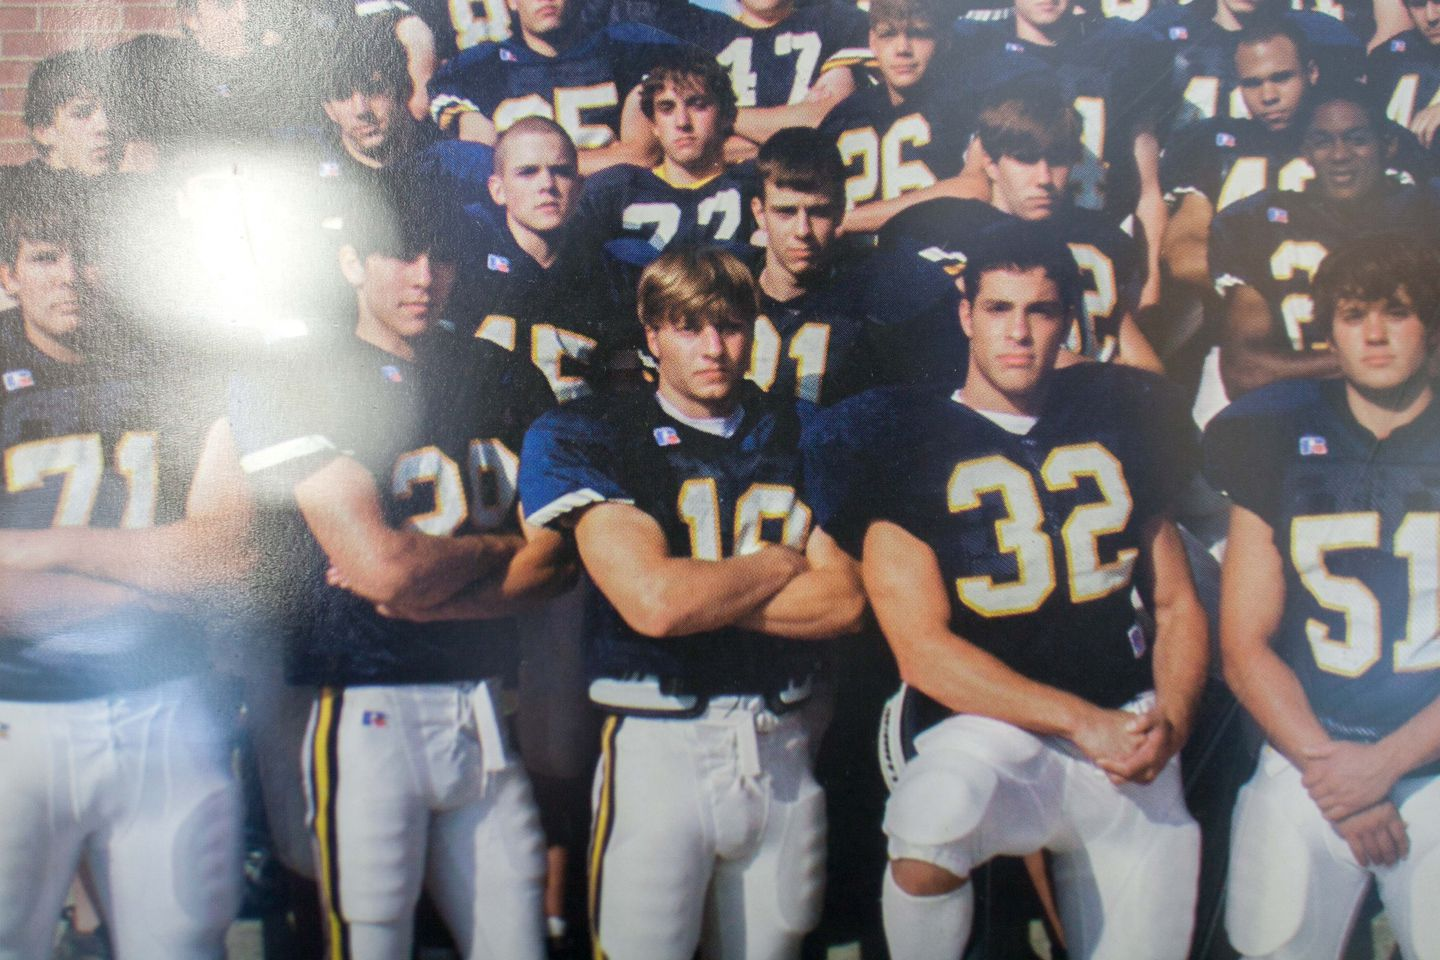 American High School Naked before he was a star coach, rams' sean mcvay was a star on